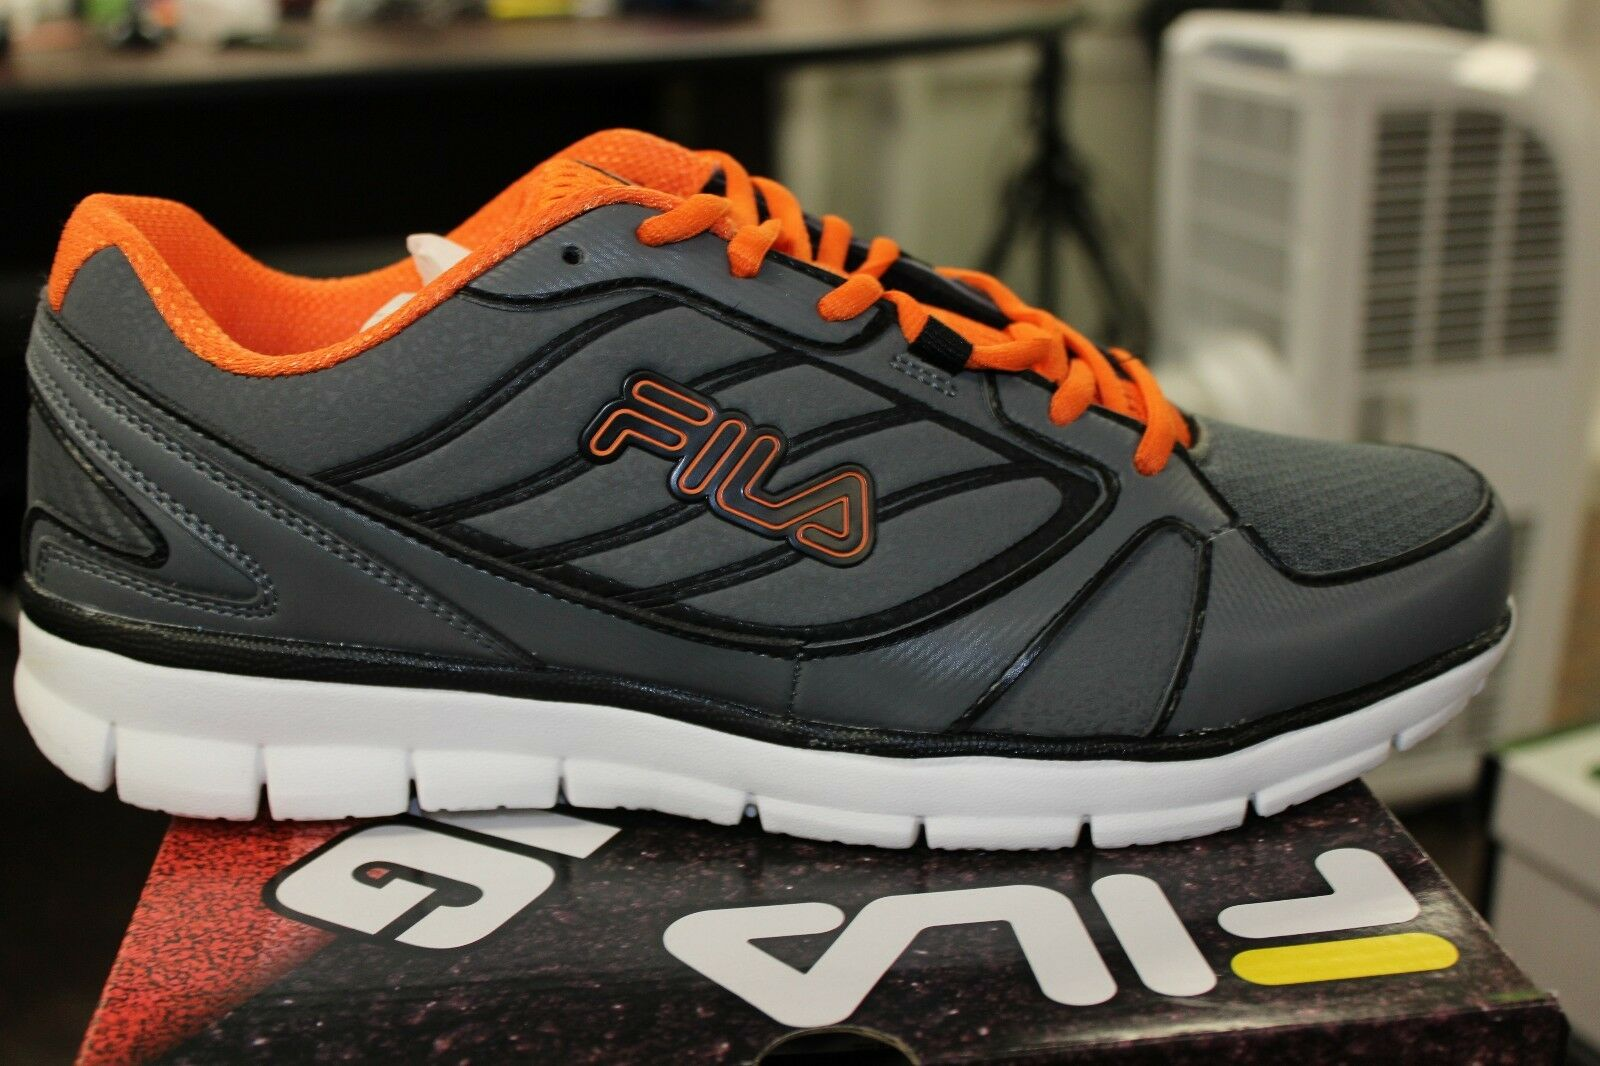 Men's Fila Flare 2 Grey Orange Black Authentic Fila New In Box The most popular shoes for men and women